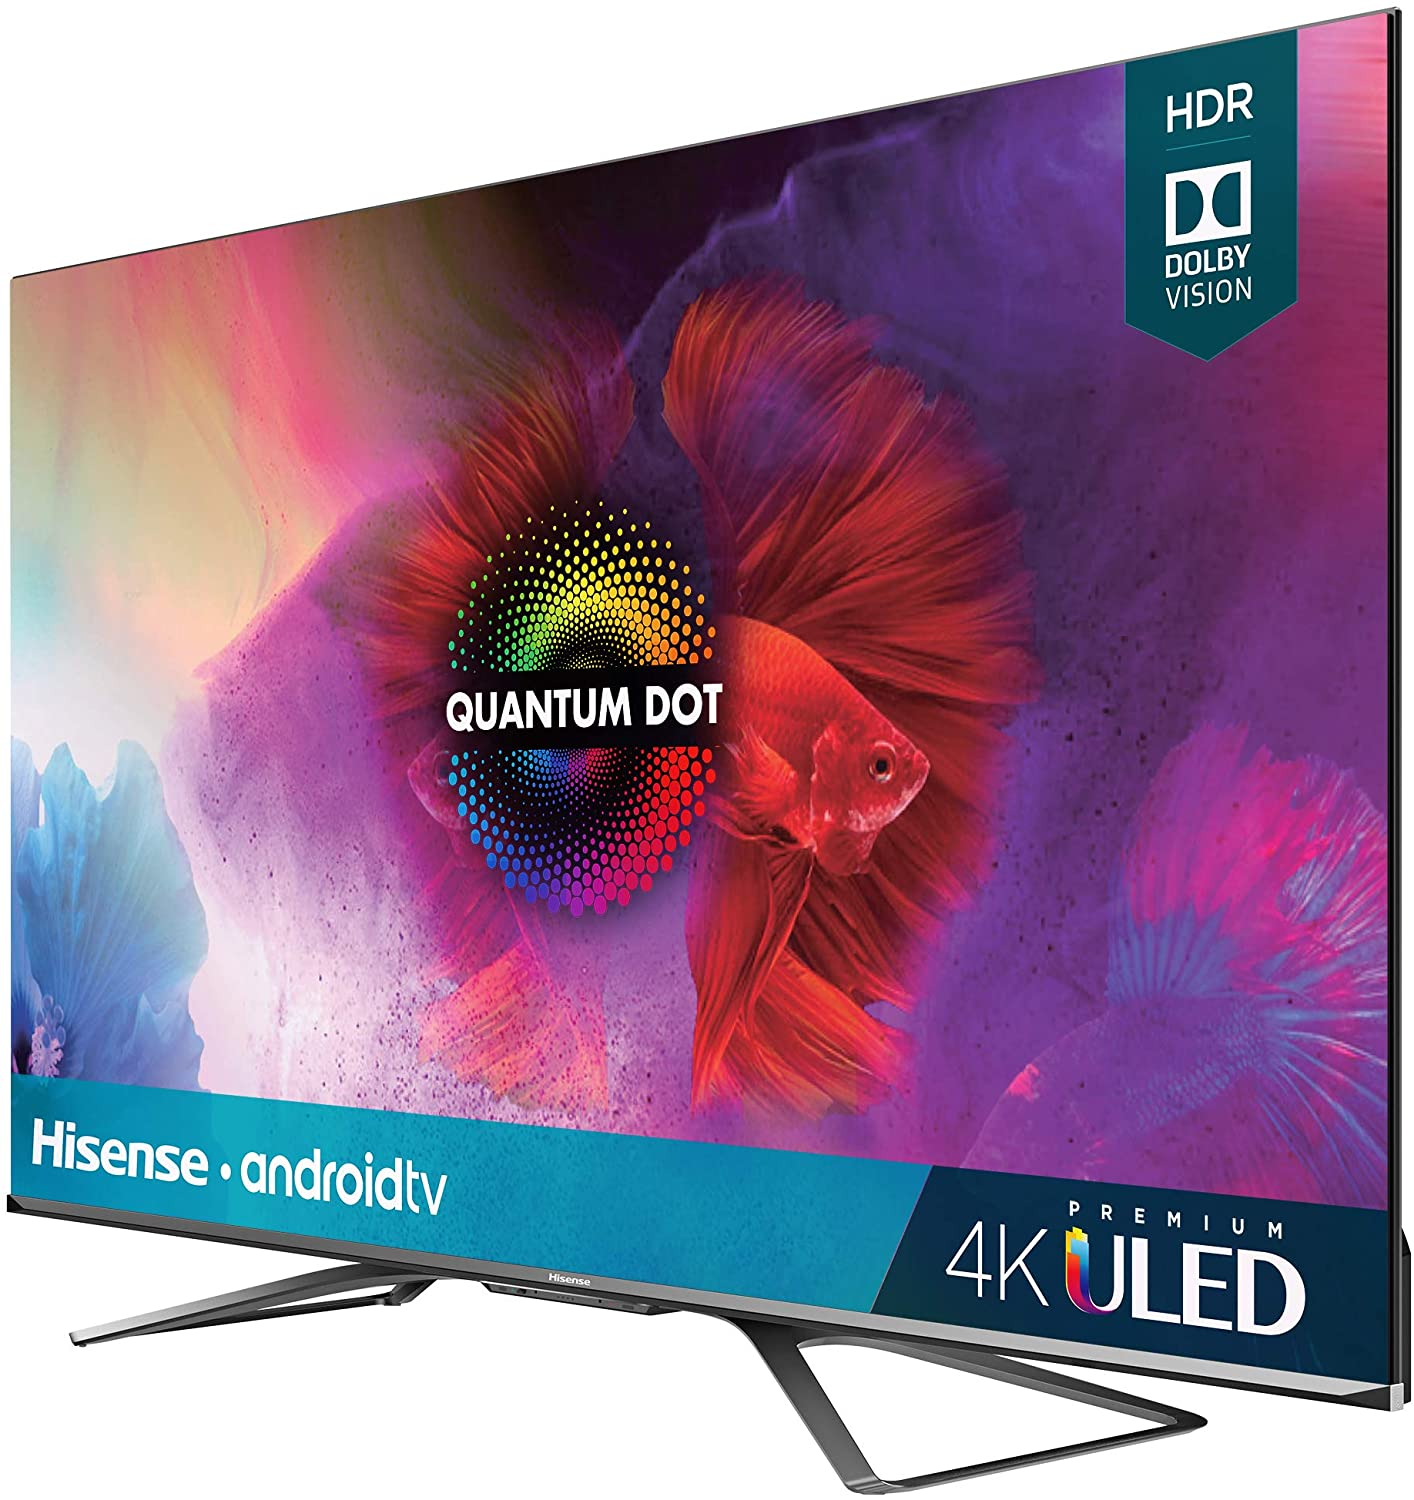 Hisense H9G TV: Meet the Affordable High-definition Television with Cutting-edge Performance